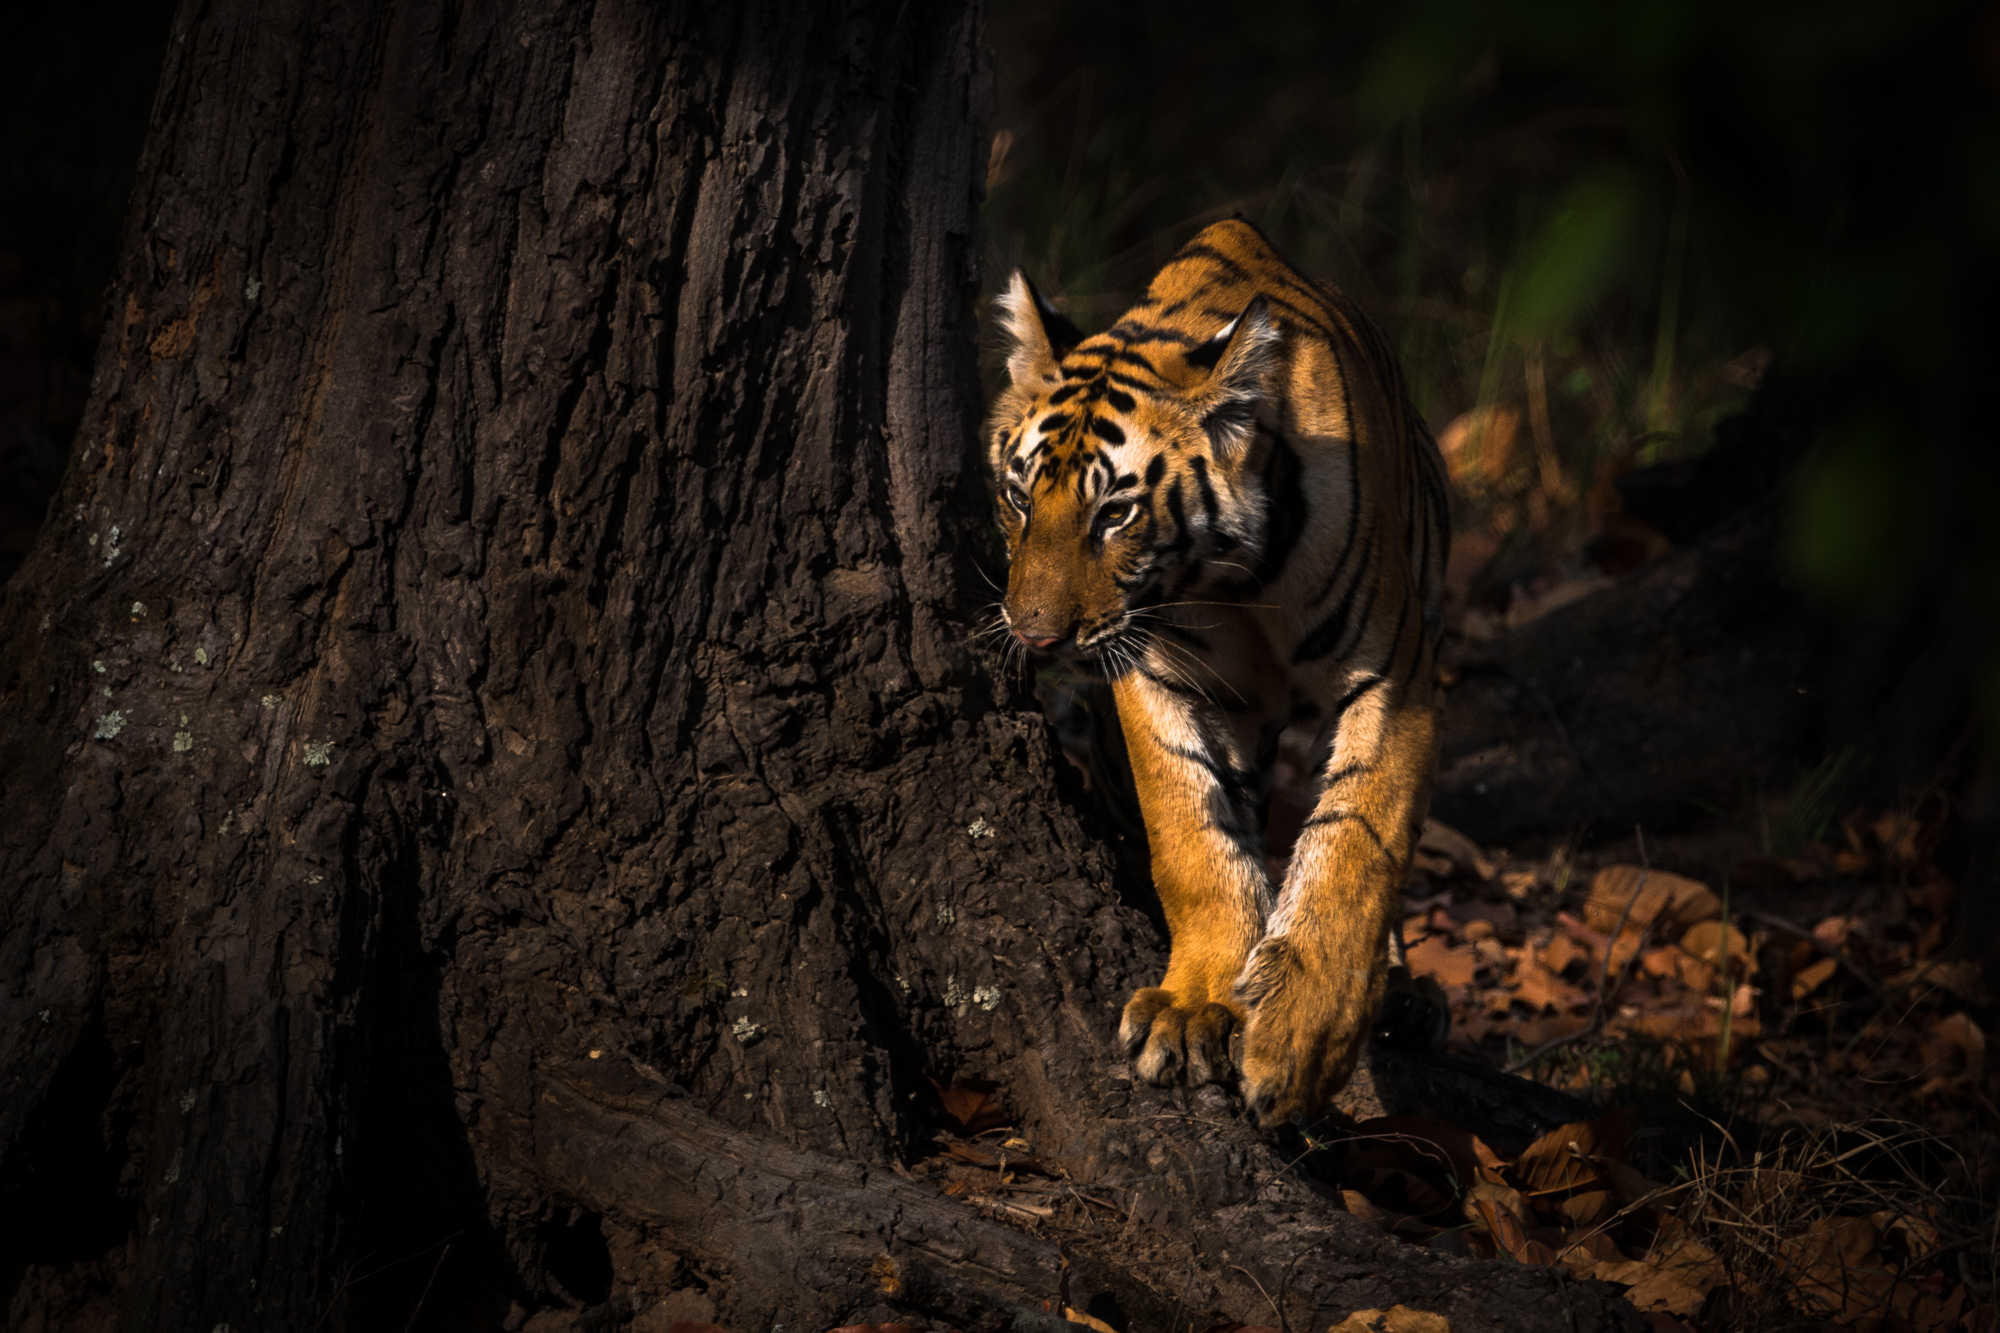 Tiger cubs are extremely curious. They like to explore every bit of their surroundings, such as this this 10 month old cub. Location: Bandhavgarh